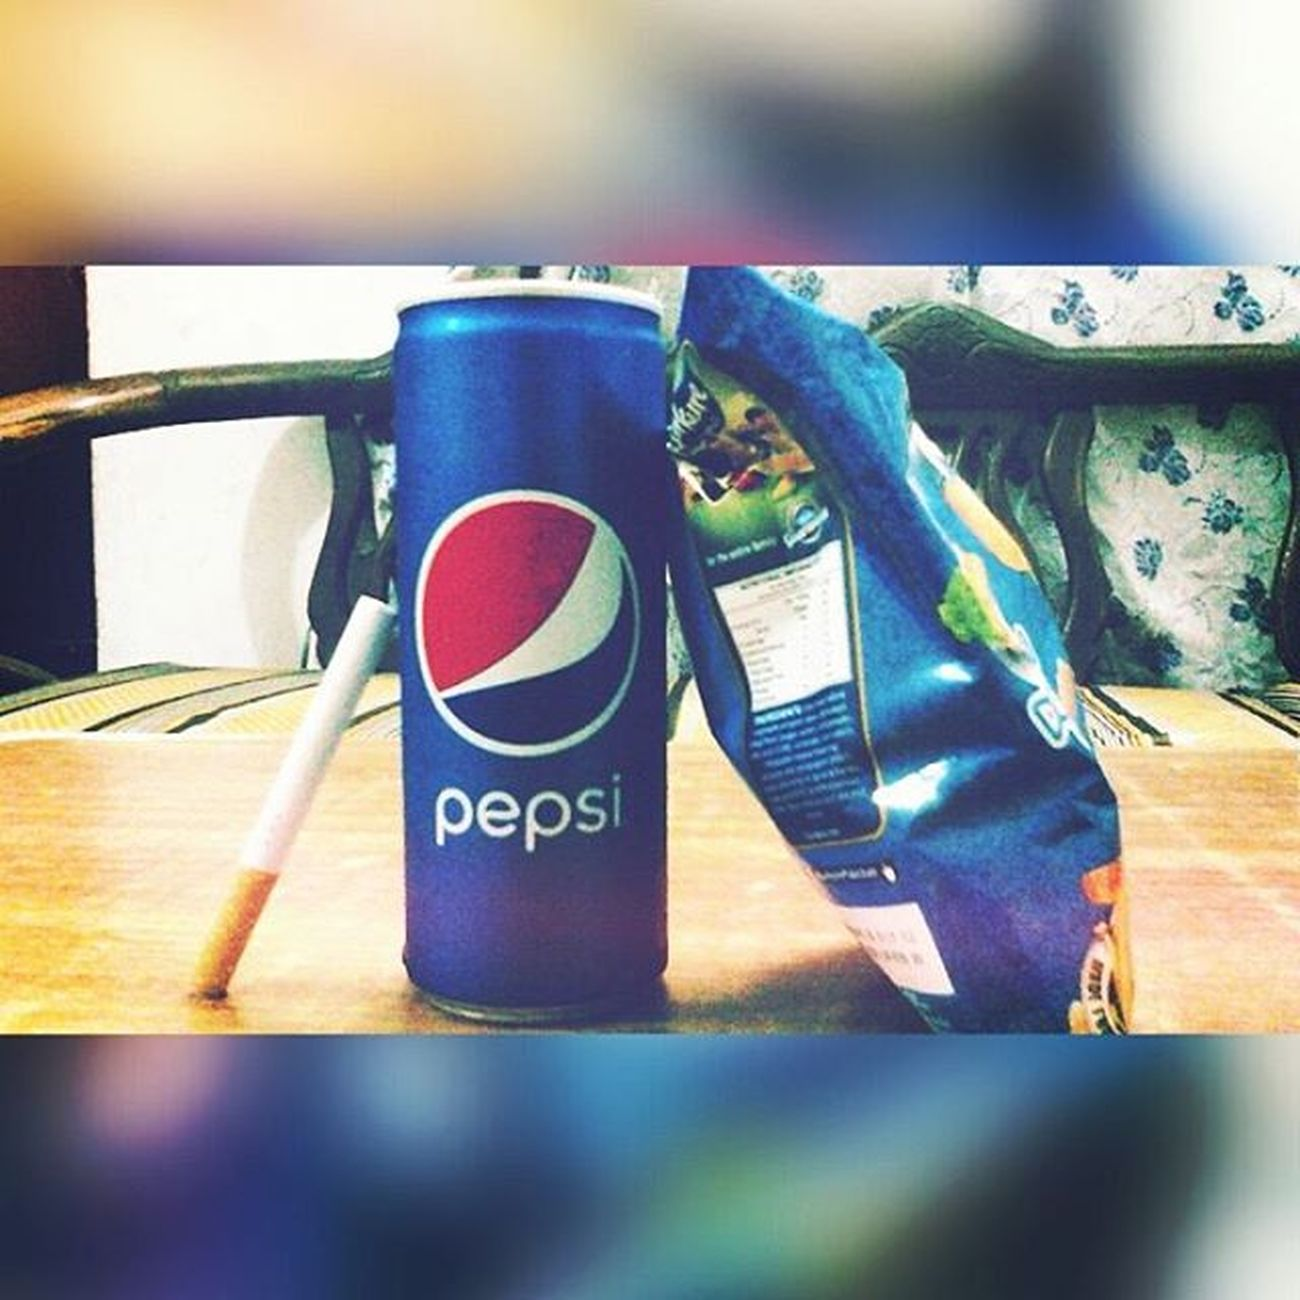 PERFECT NIGHT PACKAGE! Kurkure GolDleaF Pepsi